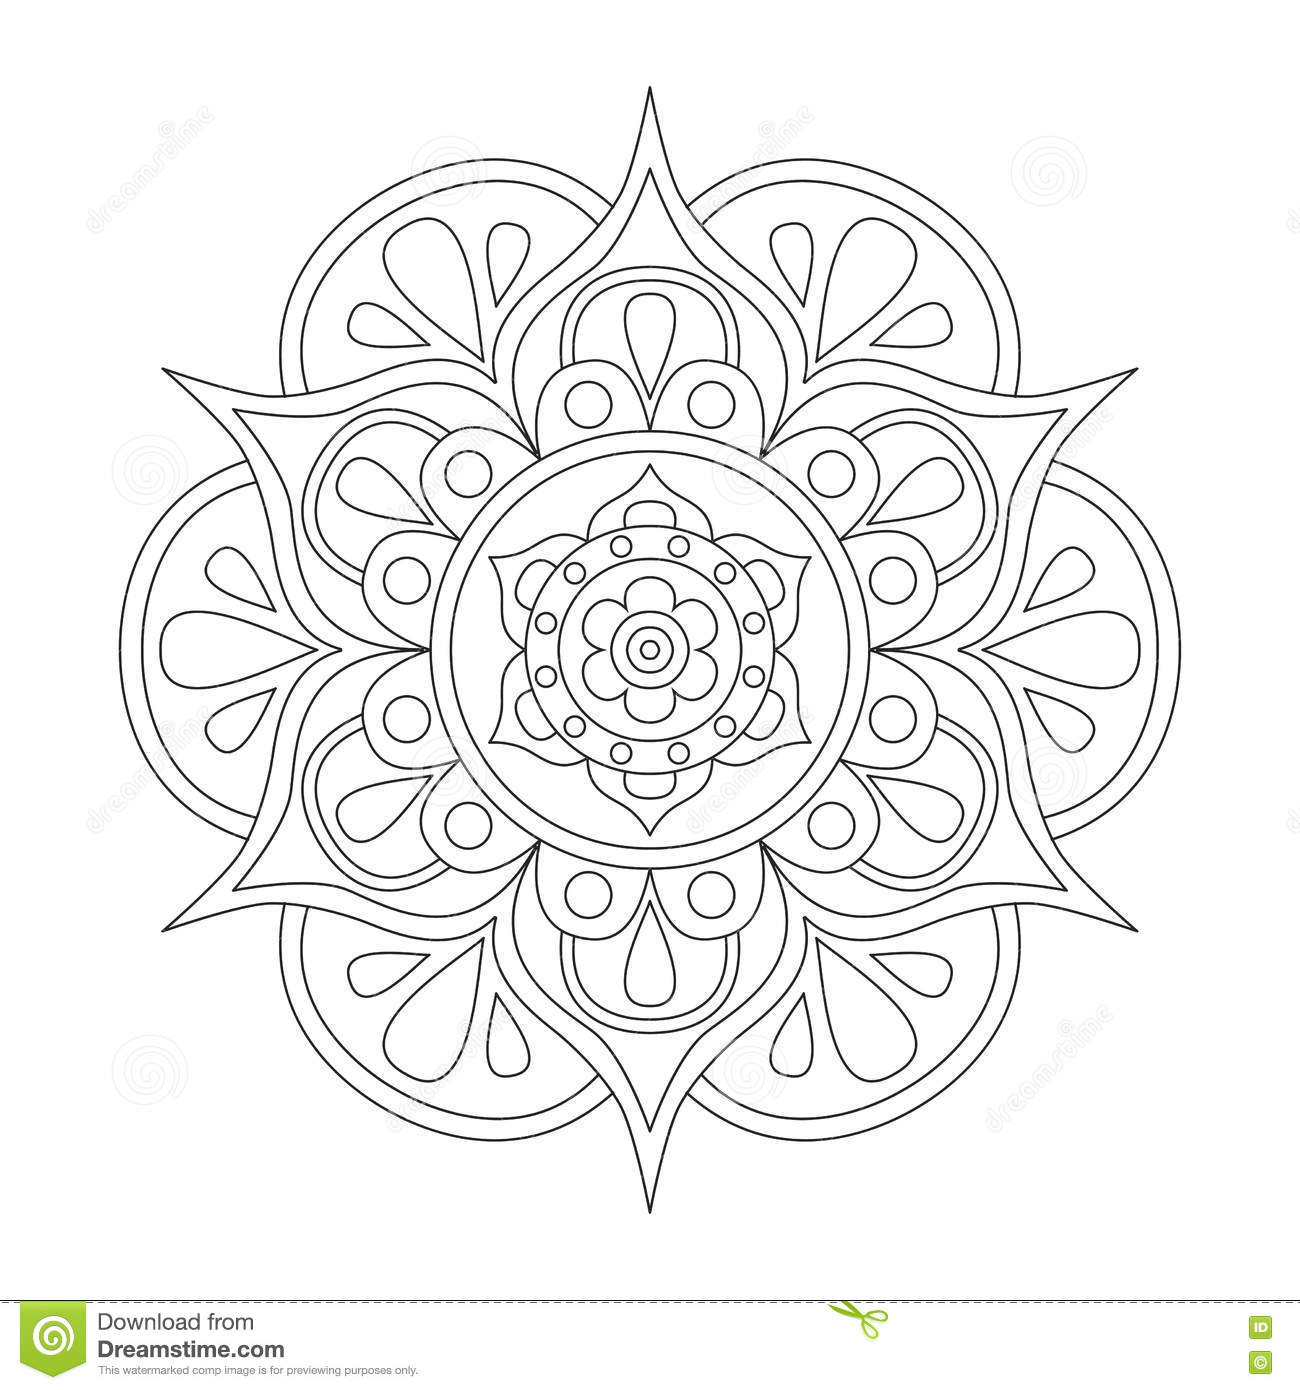 Outline Mandala For Coloring Book Anti Stress Therapy